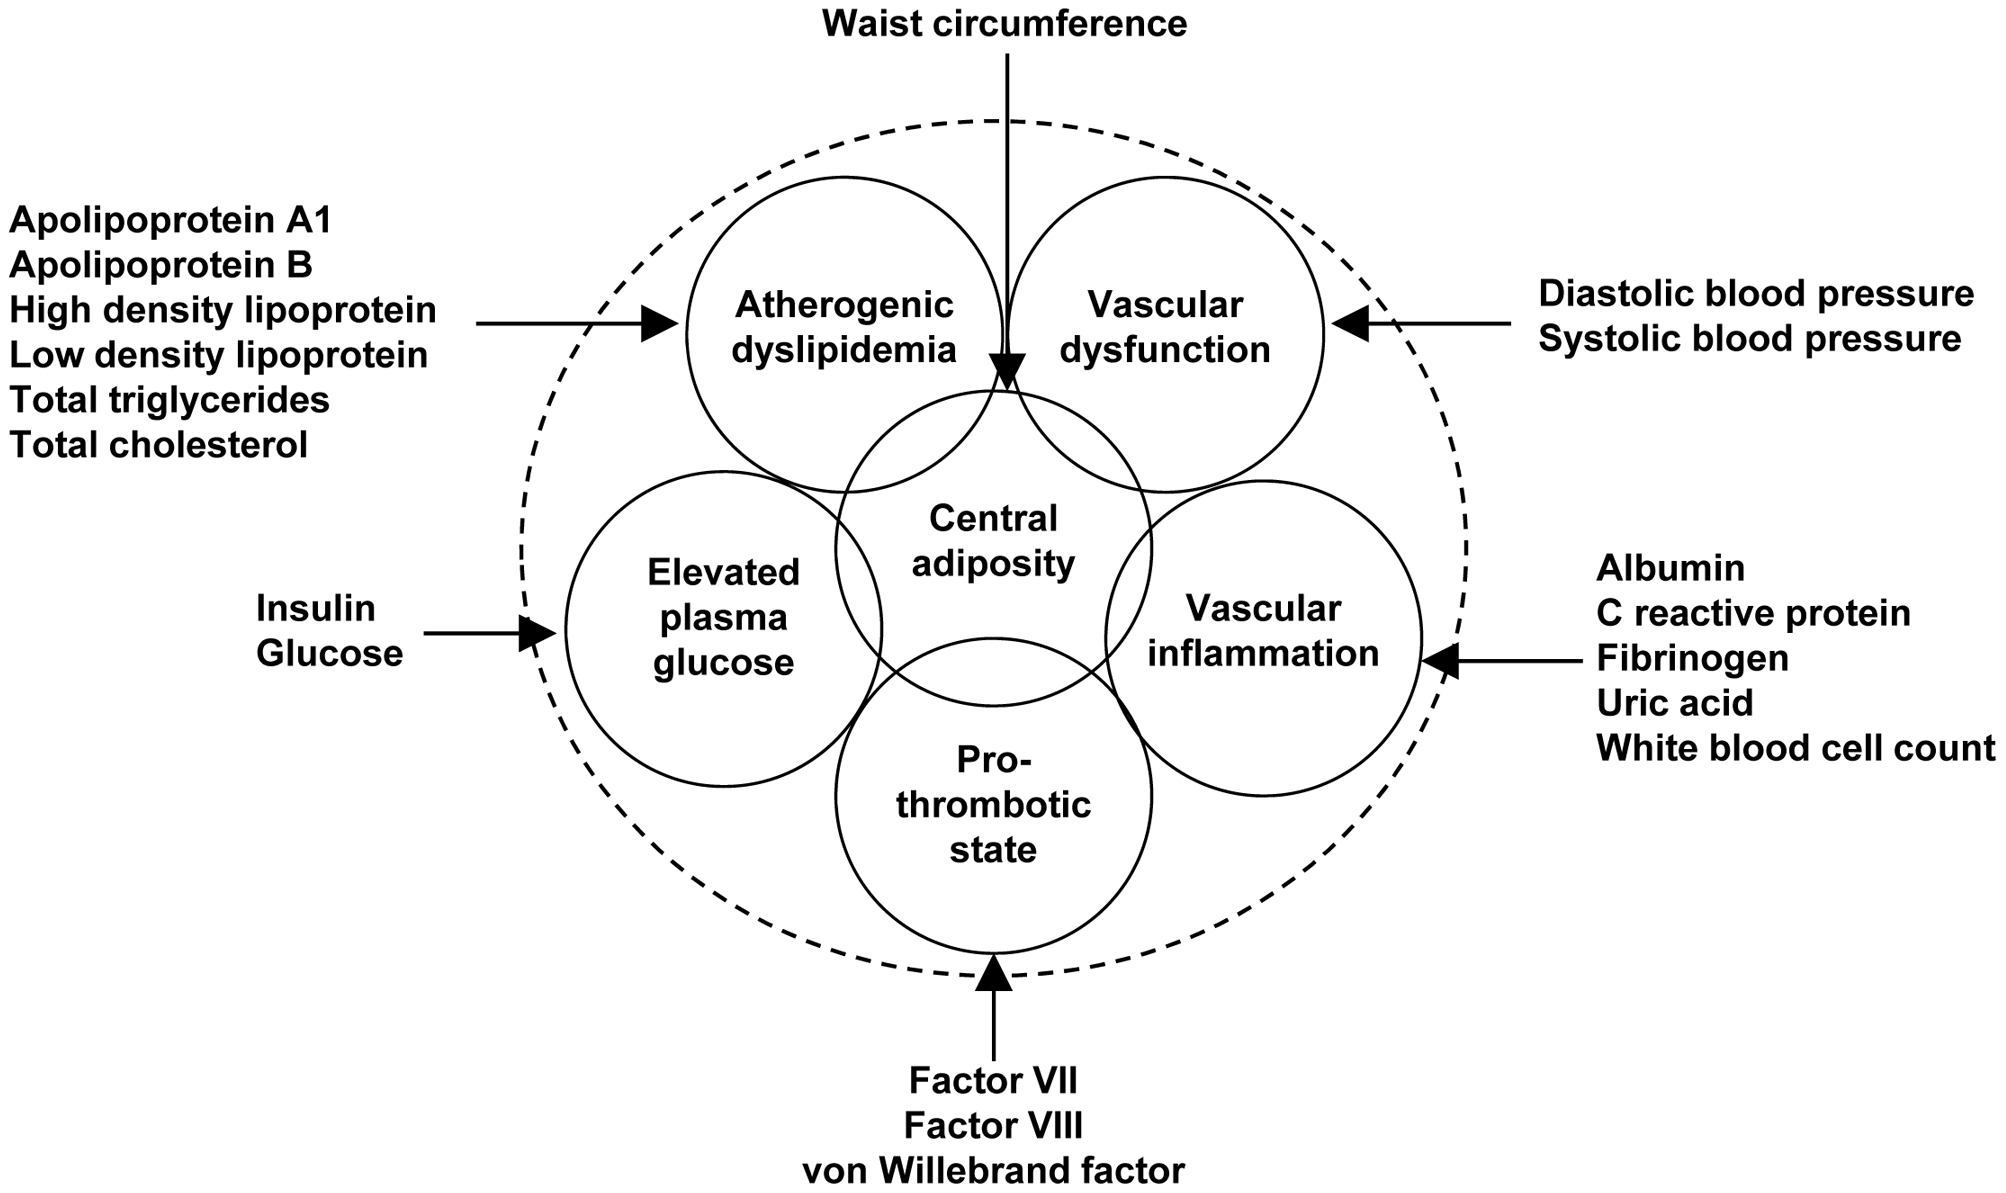 Variables used to characterize six metabolic syndrome domains.